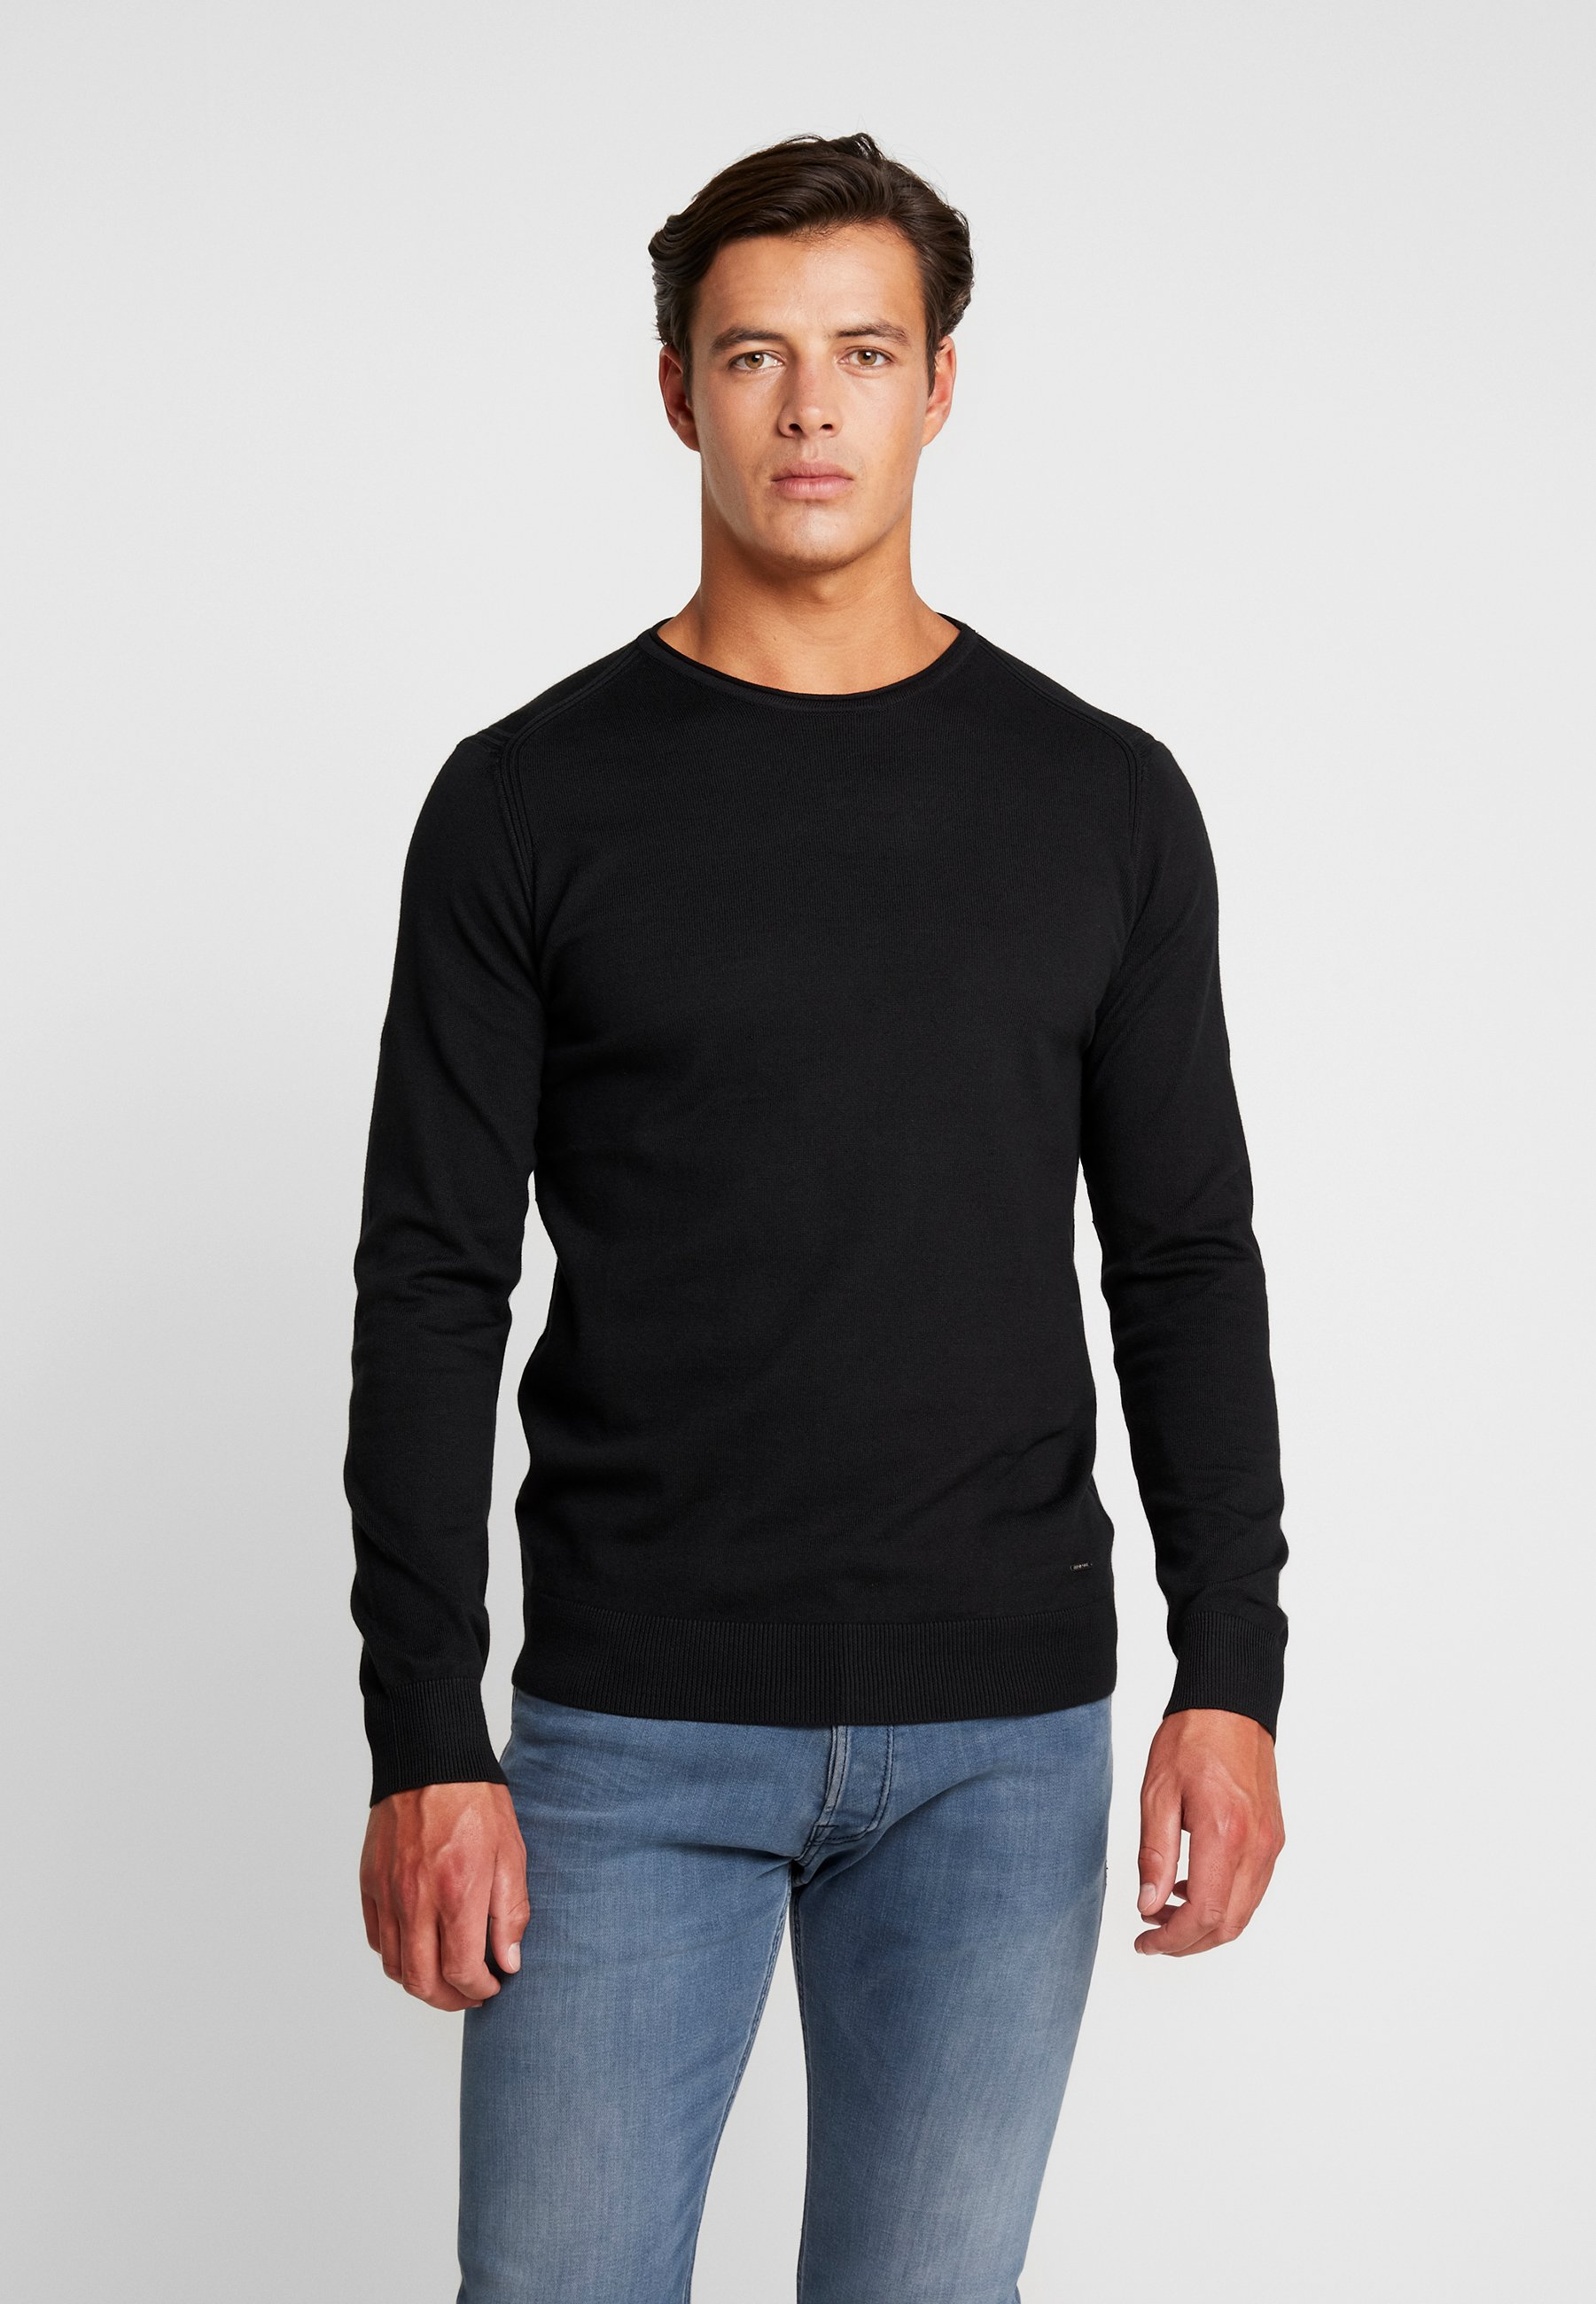 Indicode Jeans CommondalePullover CommondalePullover Indicode Indicode Jeans Black Black Indicode Jeans CommondalePullover CommondalePullover Black Jeans jUGLSMVpqz